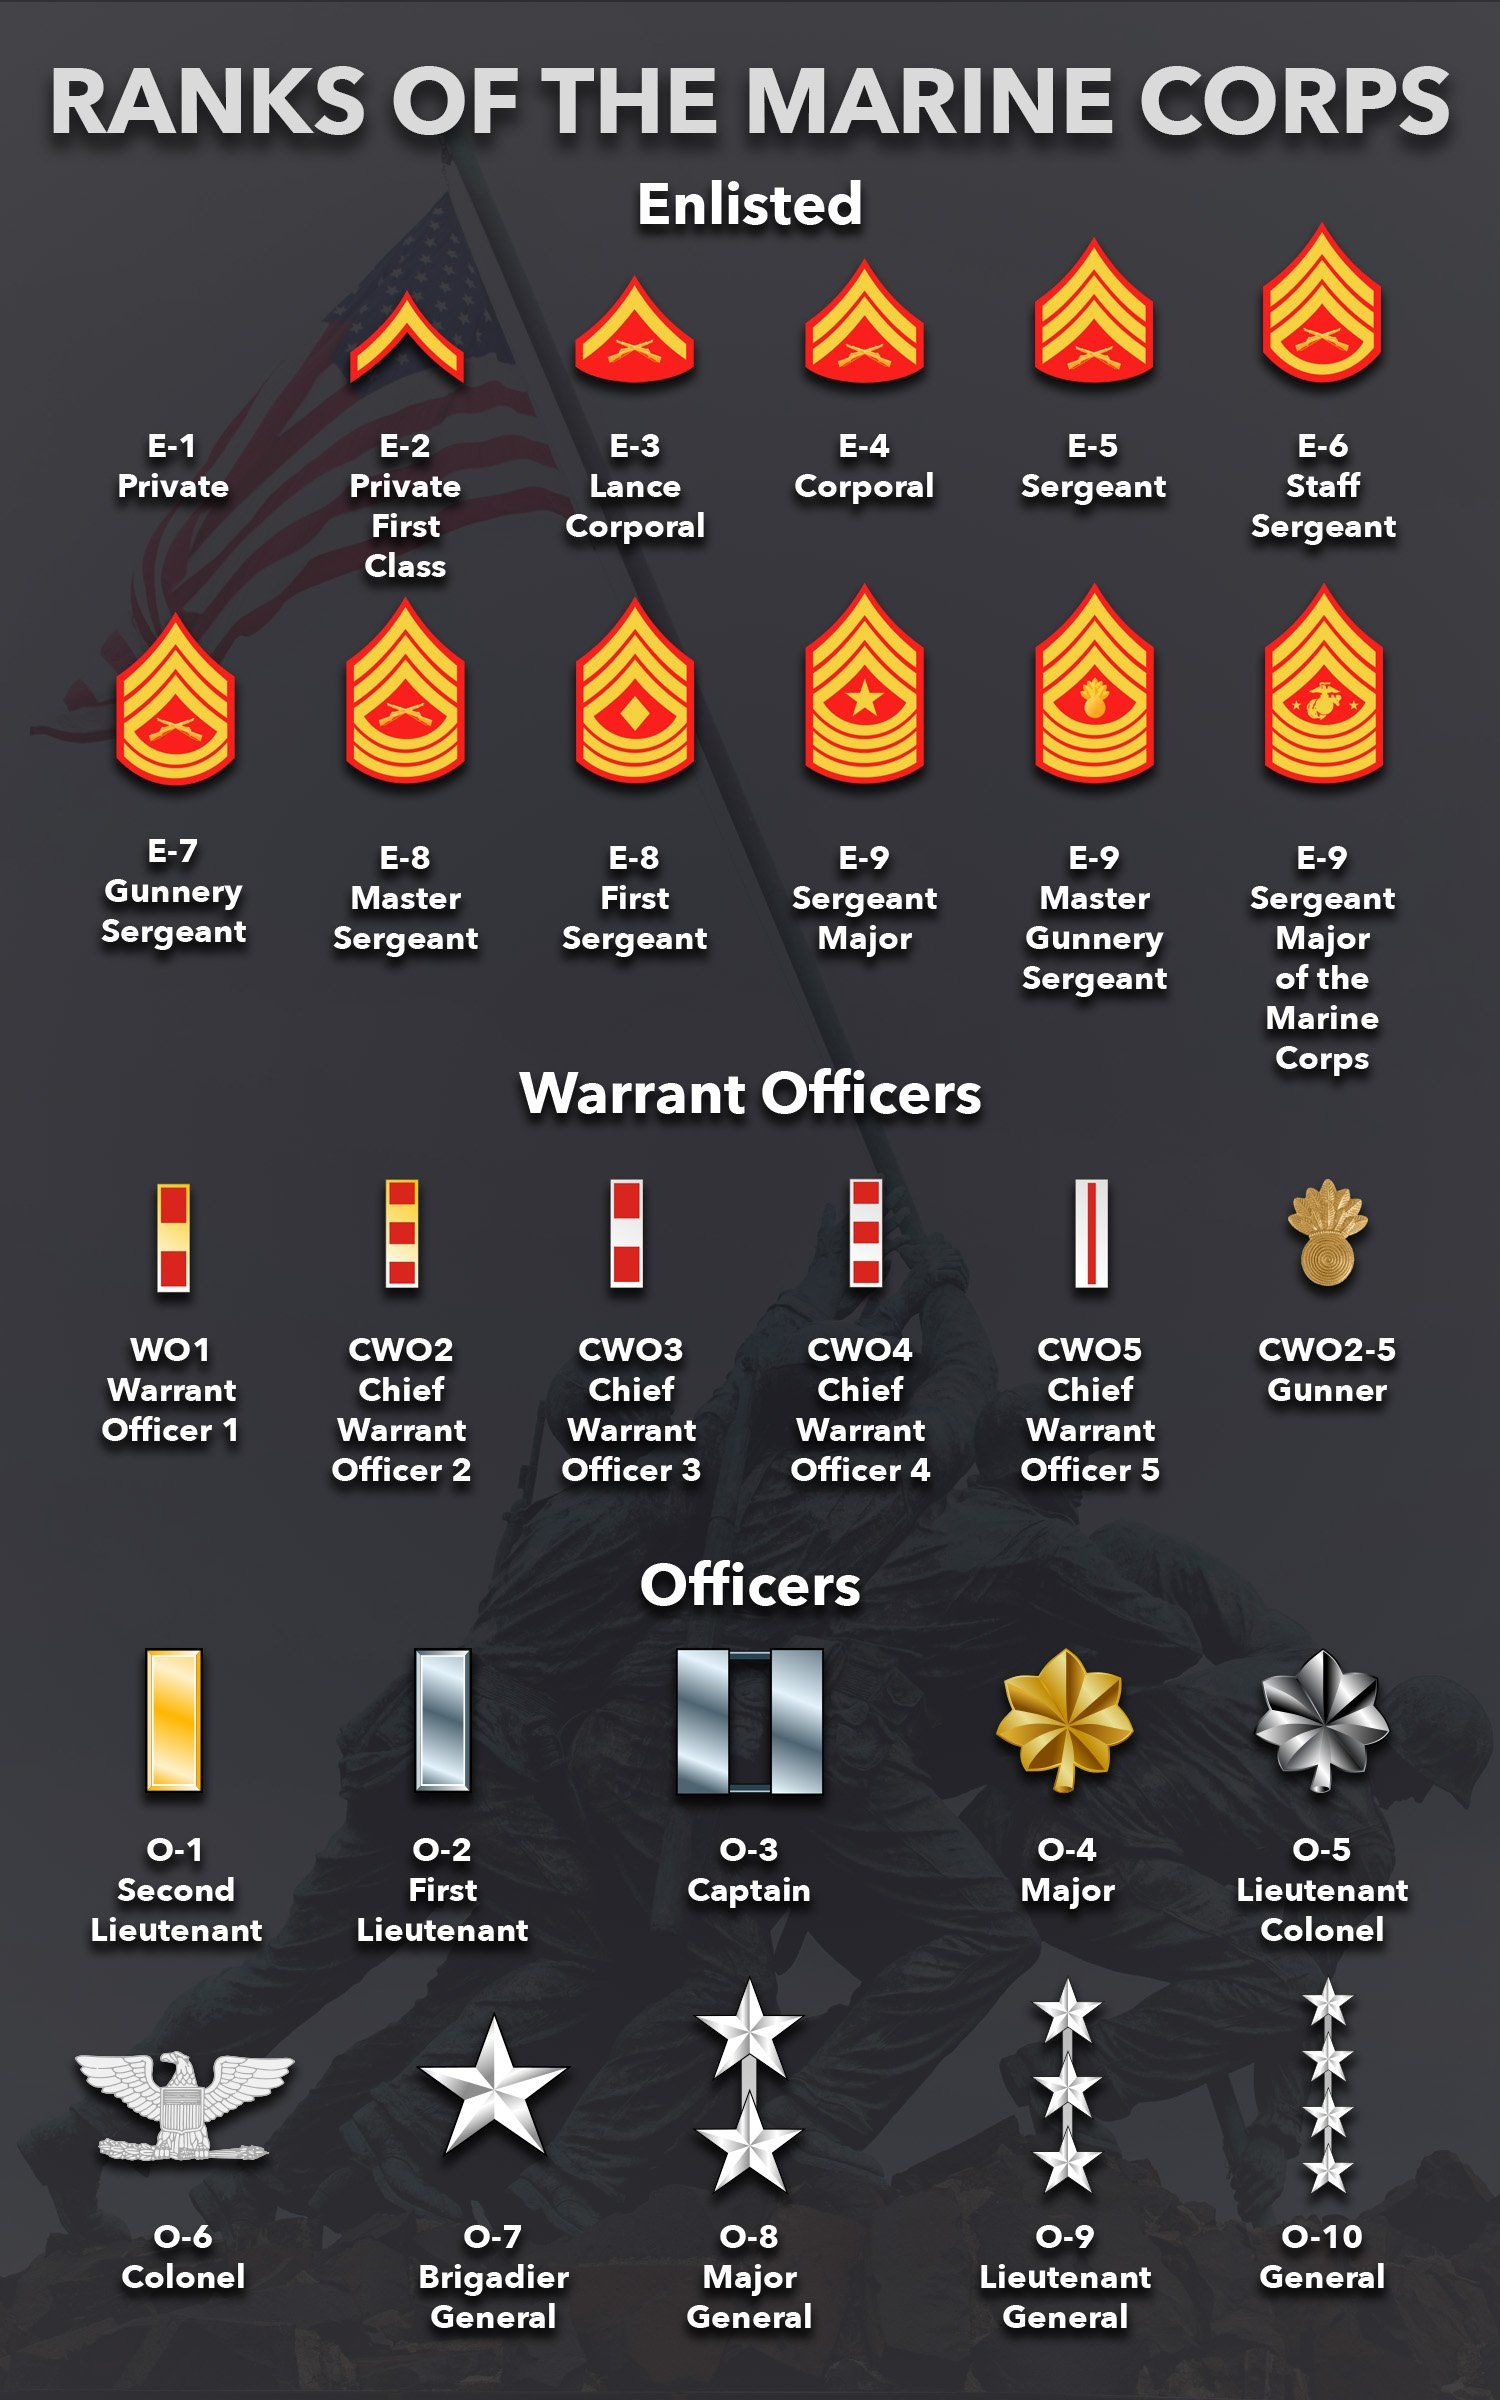 Marine Corps Ranks | Enlisted And Officer Ranks - Marine